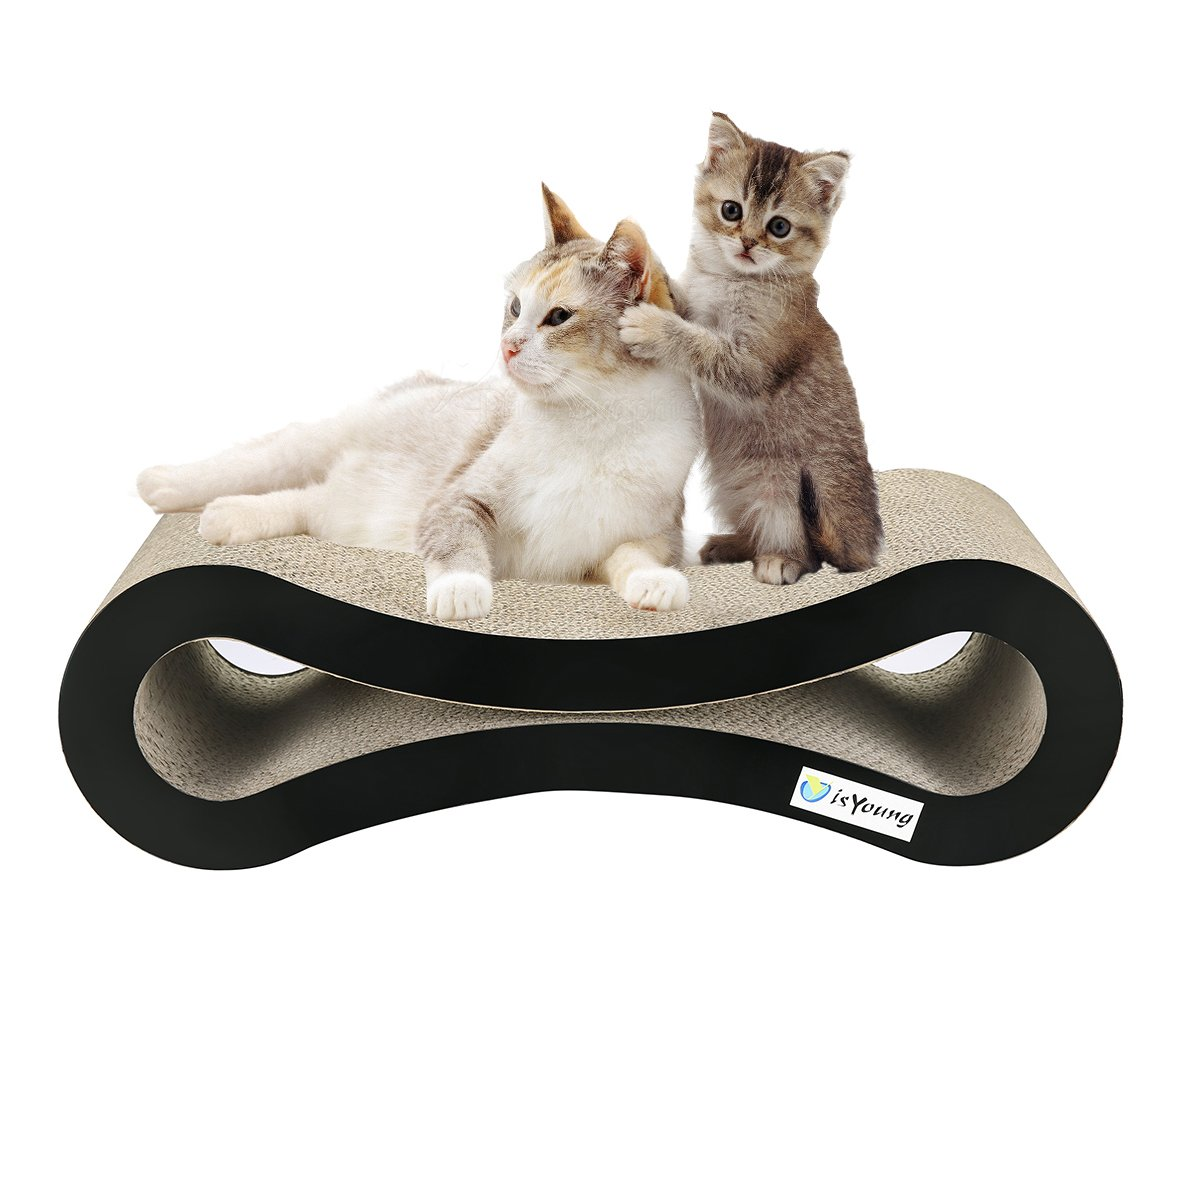 isYoung Cat Scratcher Lounge Corrugated Cat Scratcher Cardboard Protector for Furniture Couch Floor Eco-Friendly Toy - Keep Cats Fun Healthy